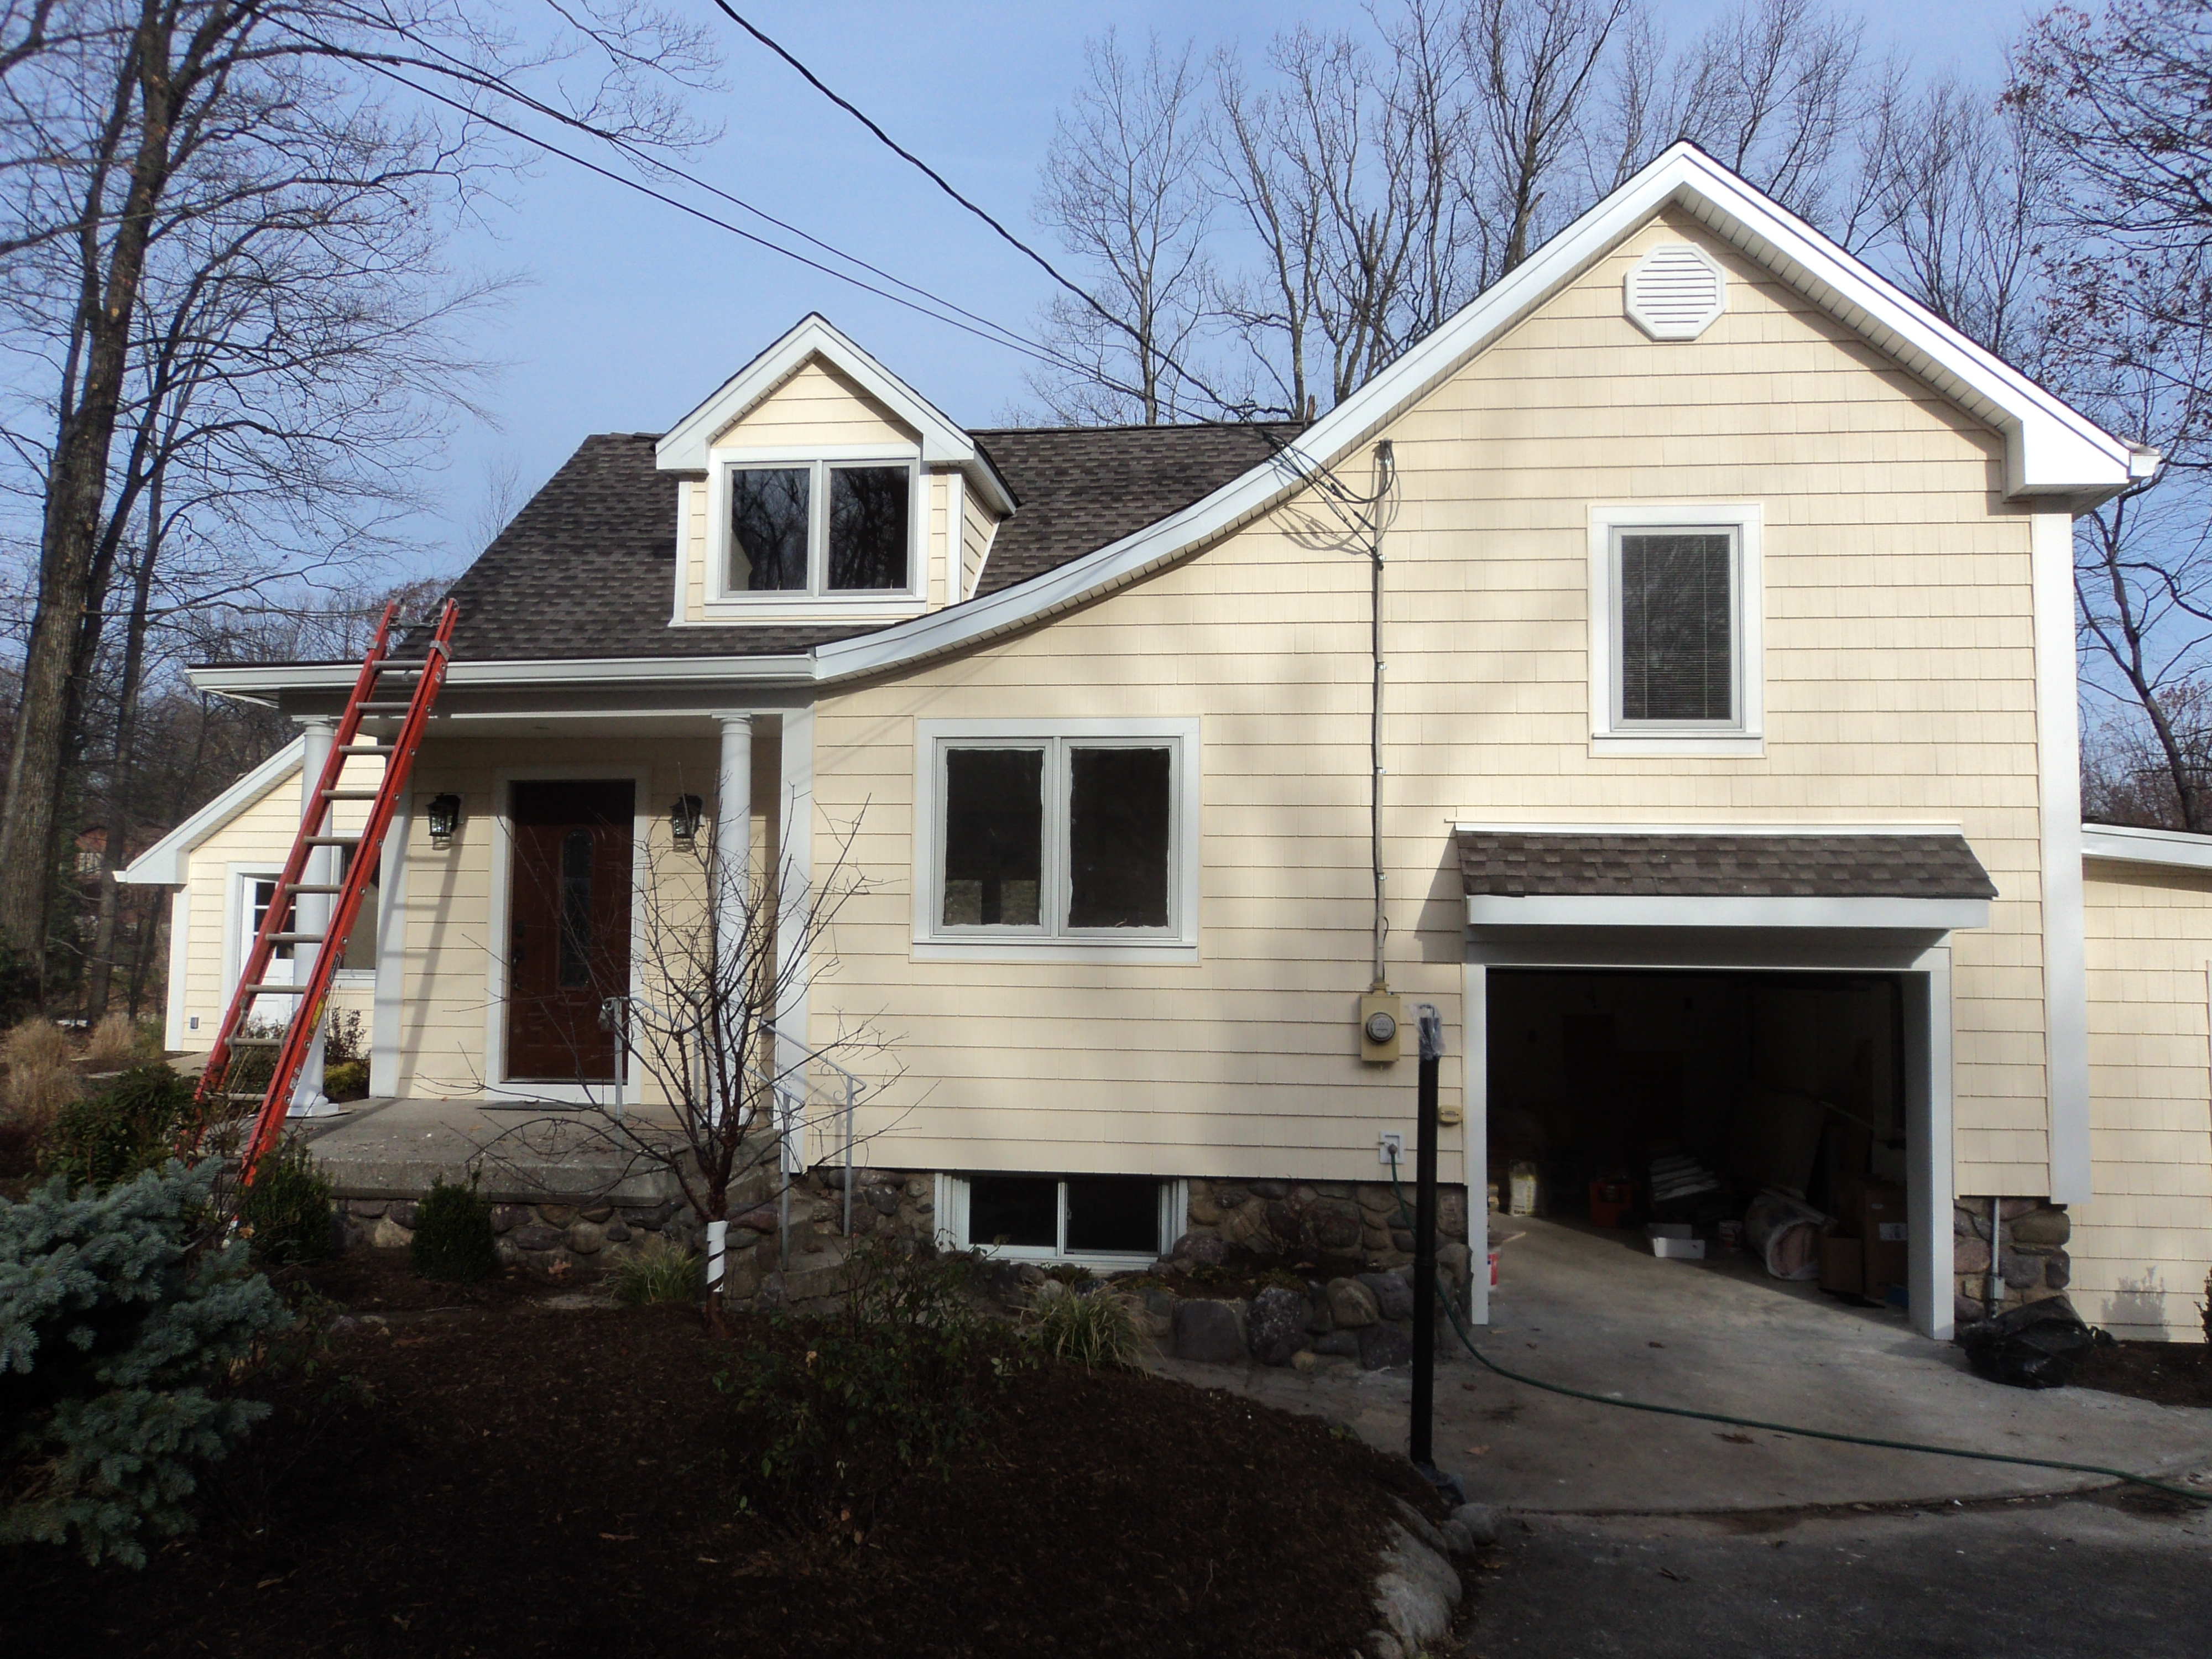 Vinyl siding styles colors and options in nj nj for Siding styles and colors